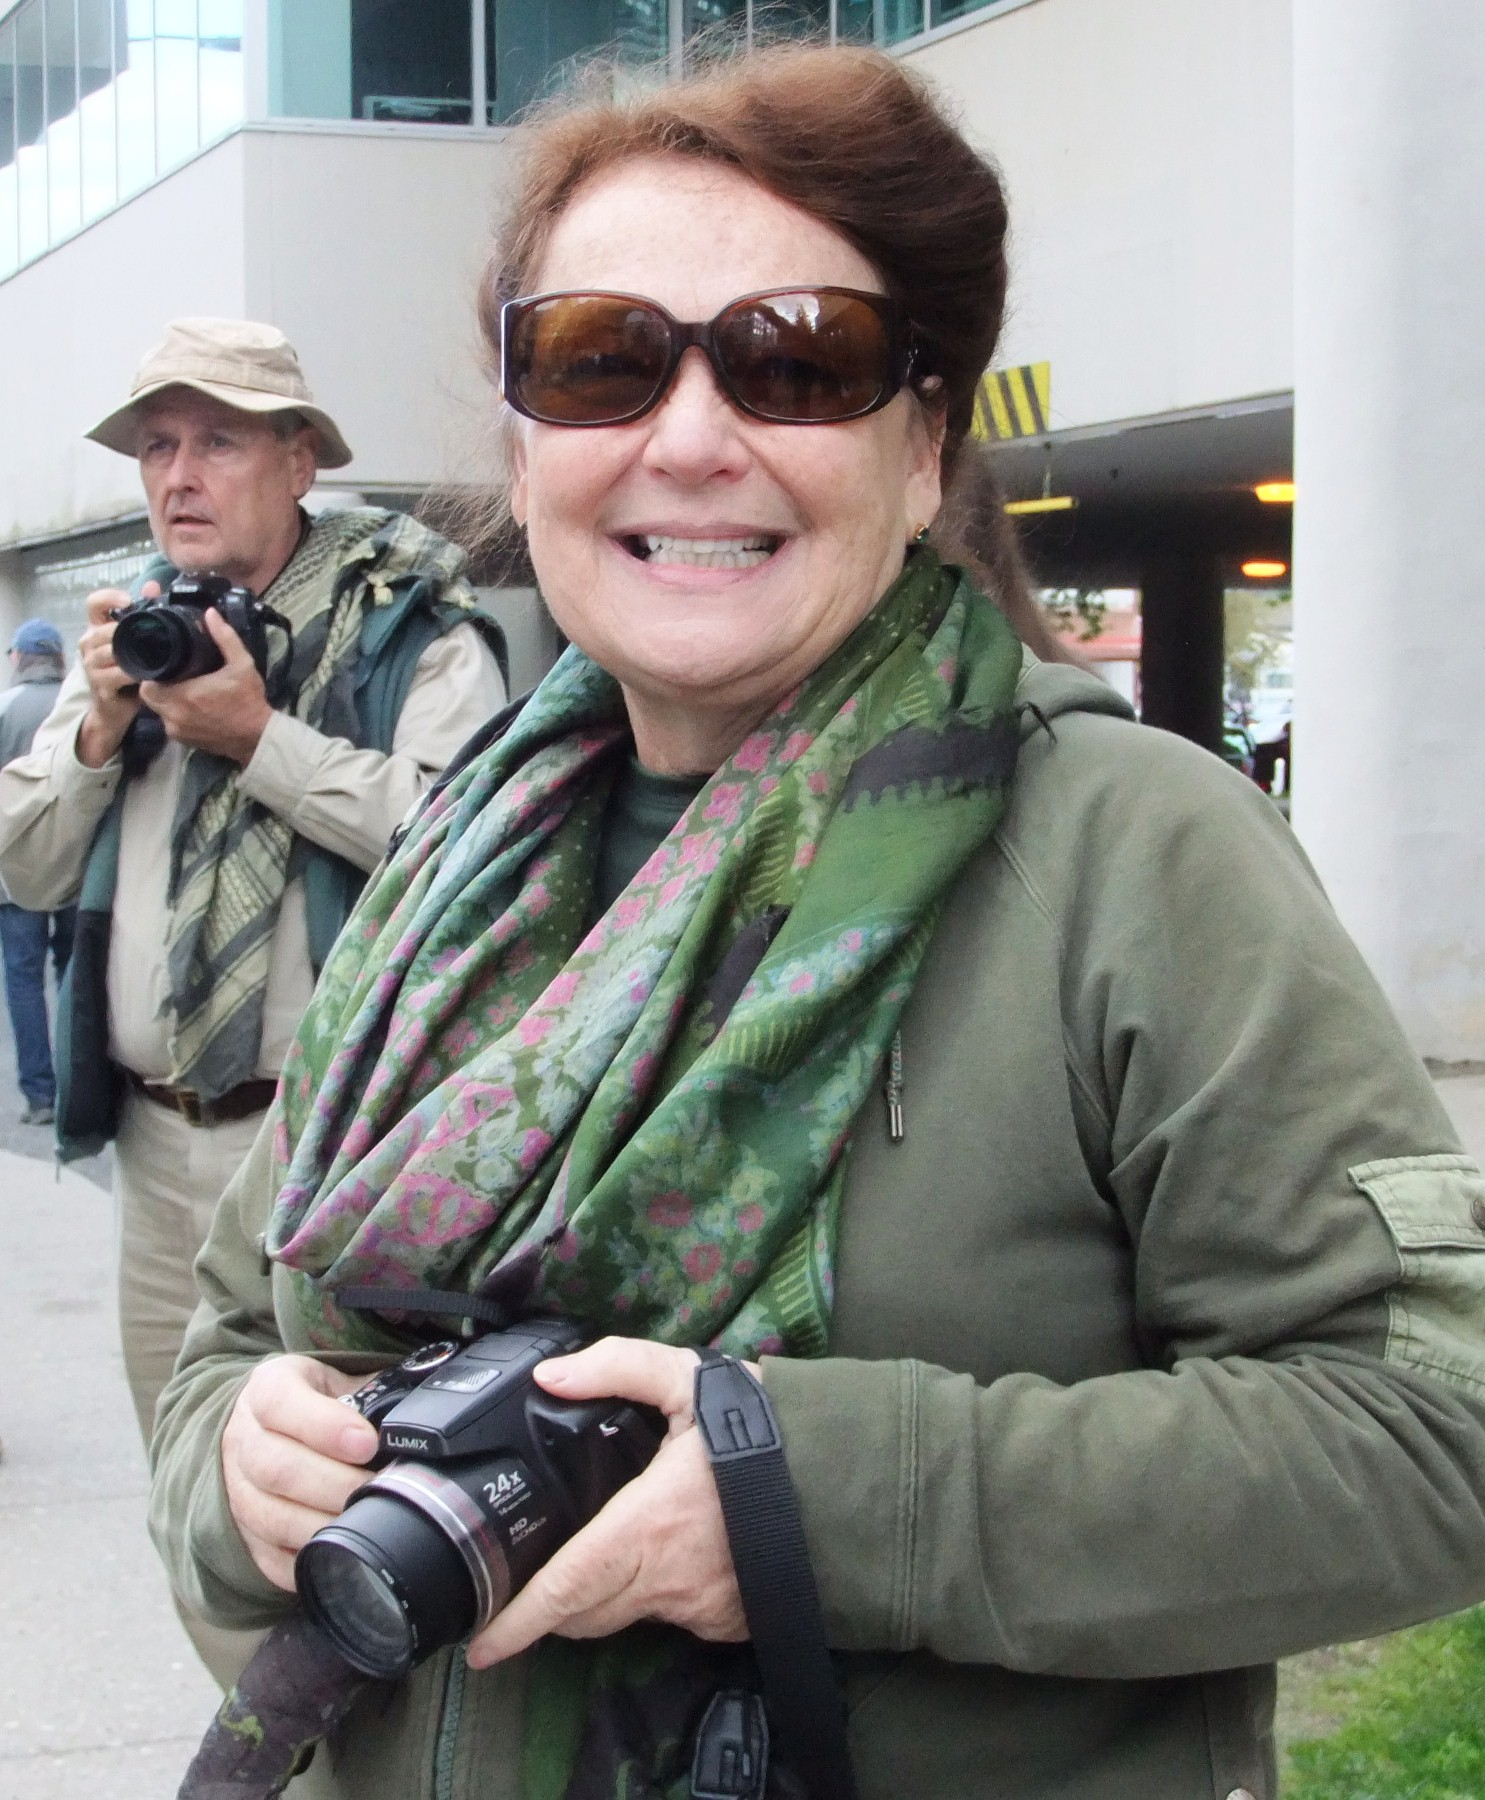 Patricia and Gary McGraw came from Florida for Celebration. She grew up in Juneau. (Photo by Rosemarie Alexander/KTOO)